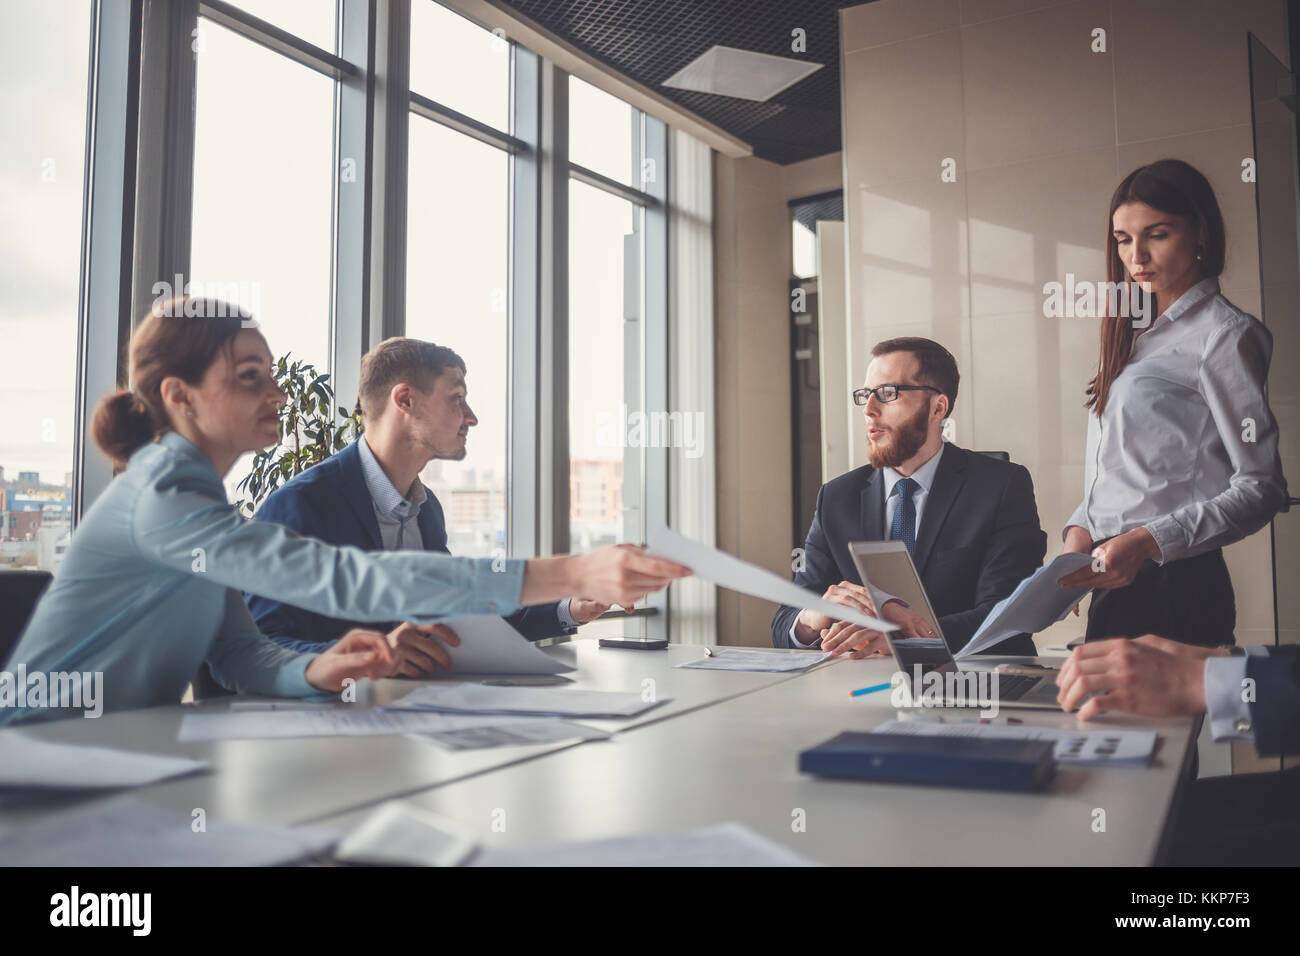 Corporate business team and manager in a meeting - Stock Image